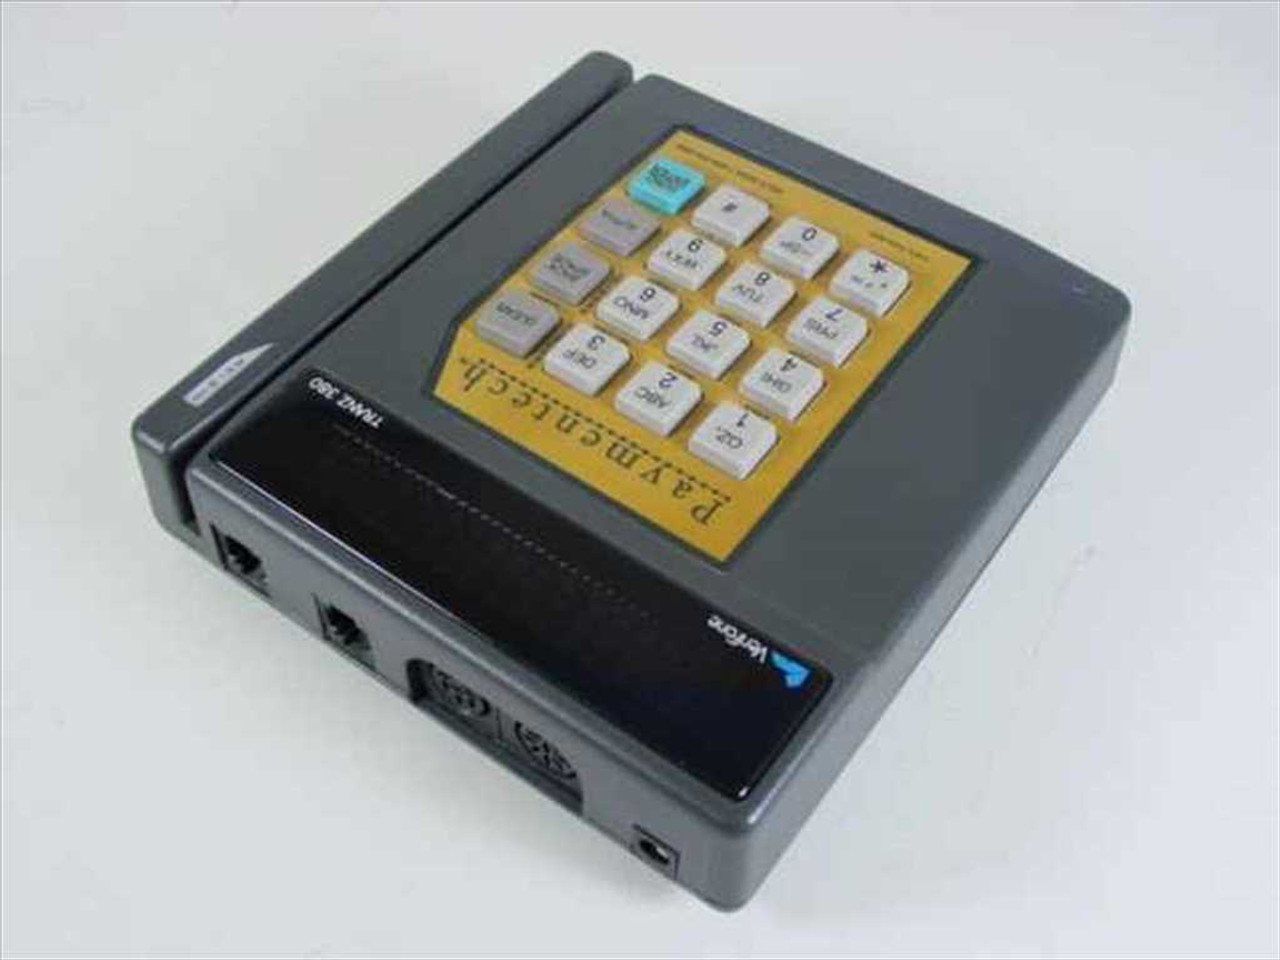 Veriforce TRANZ 380 P036-001-01 Credit Card Reader